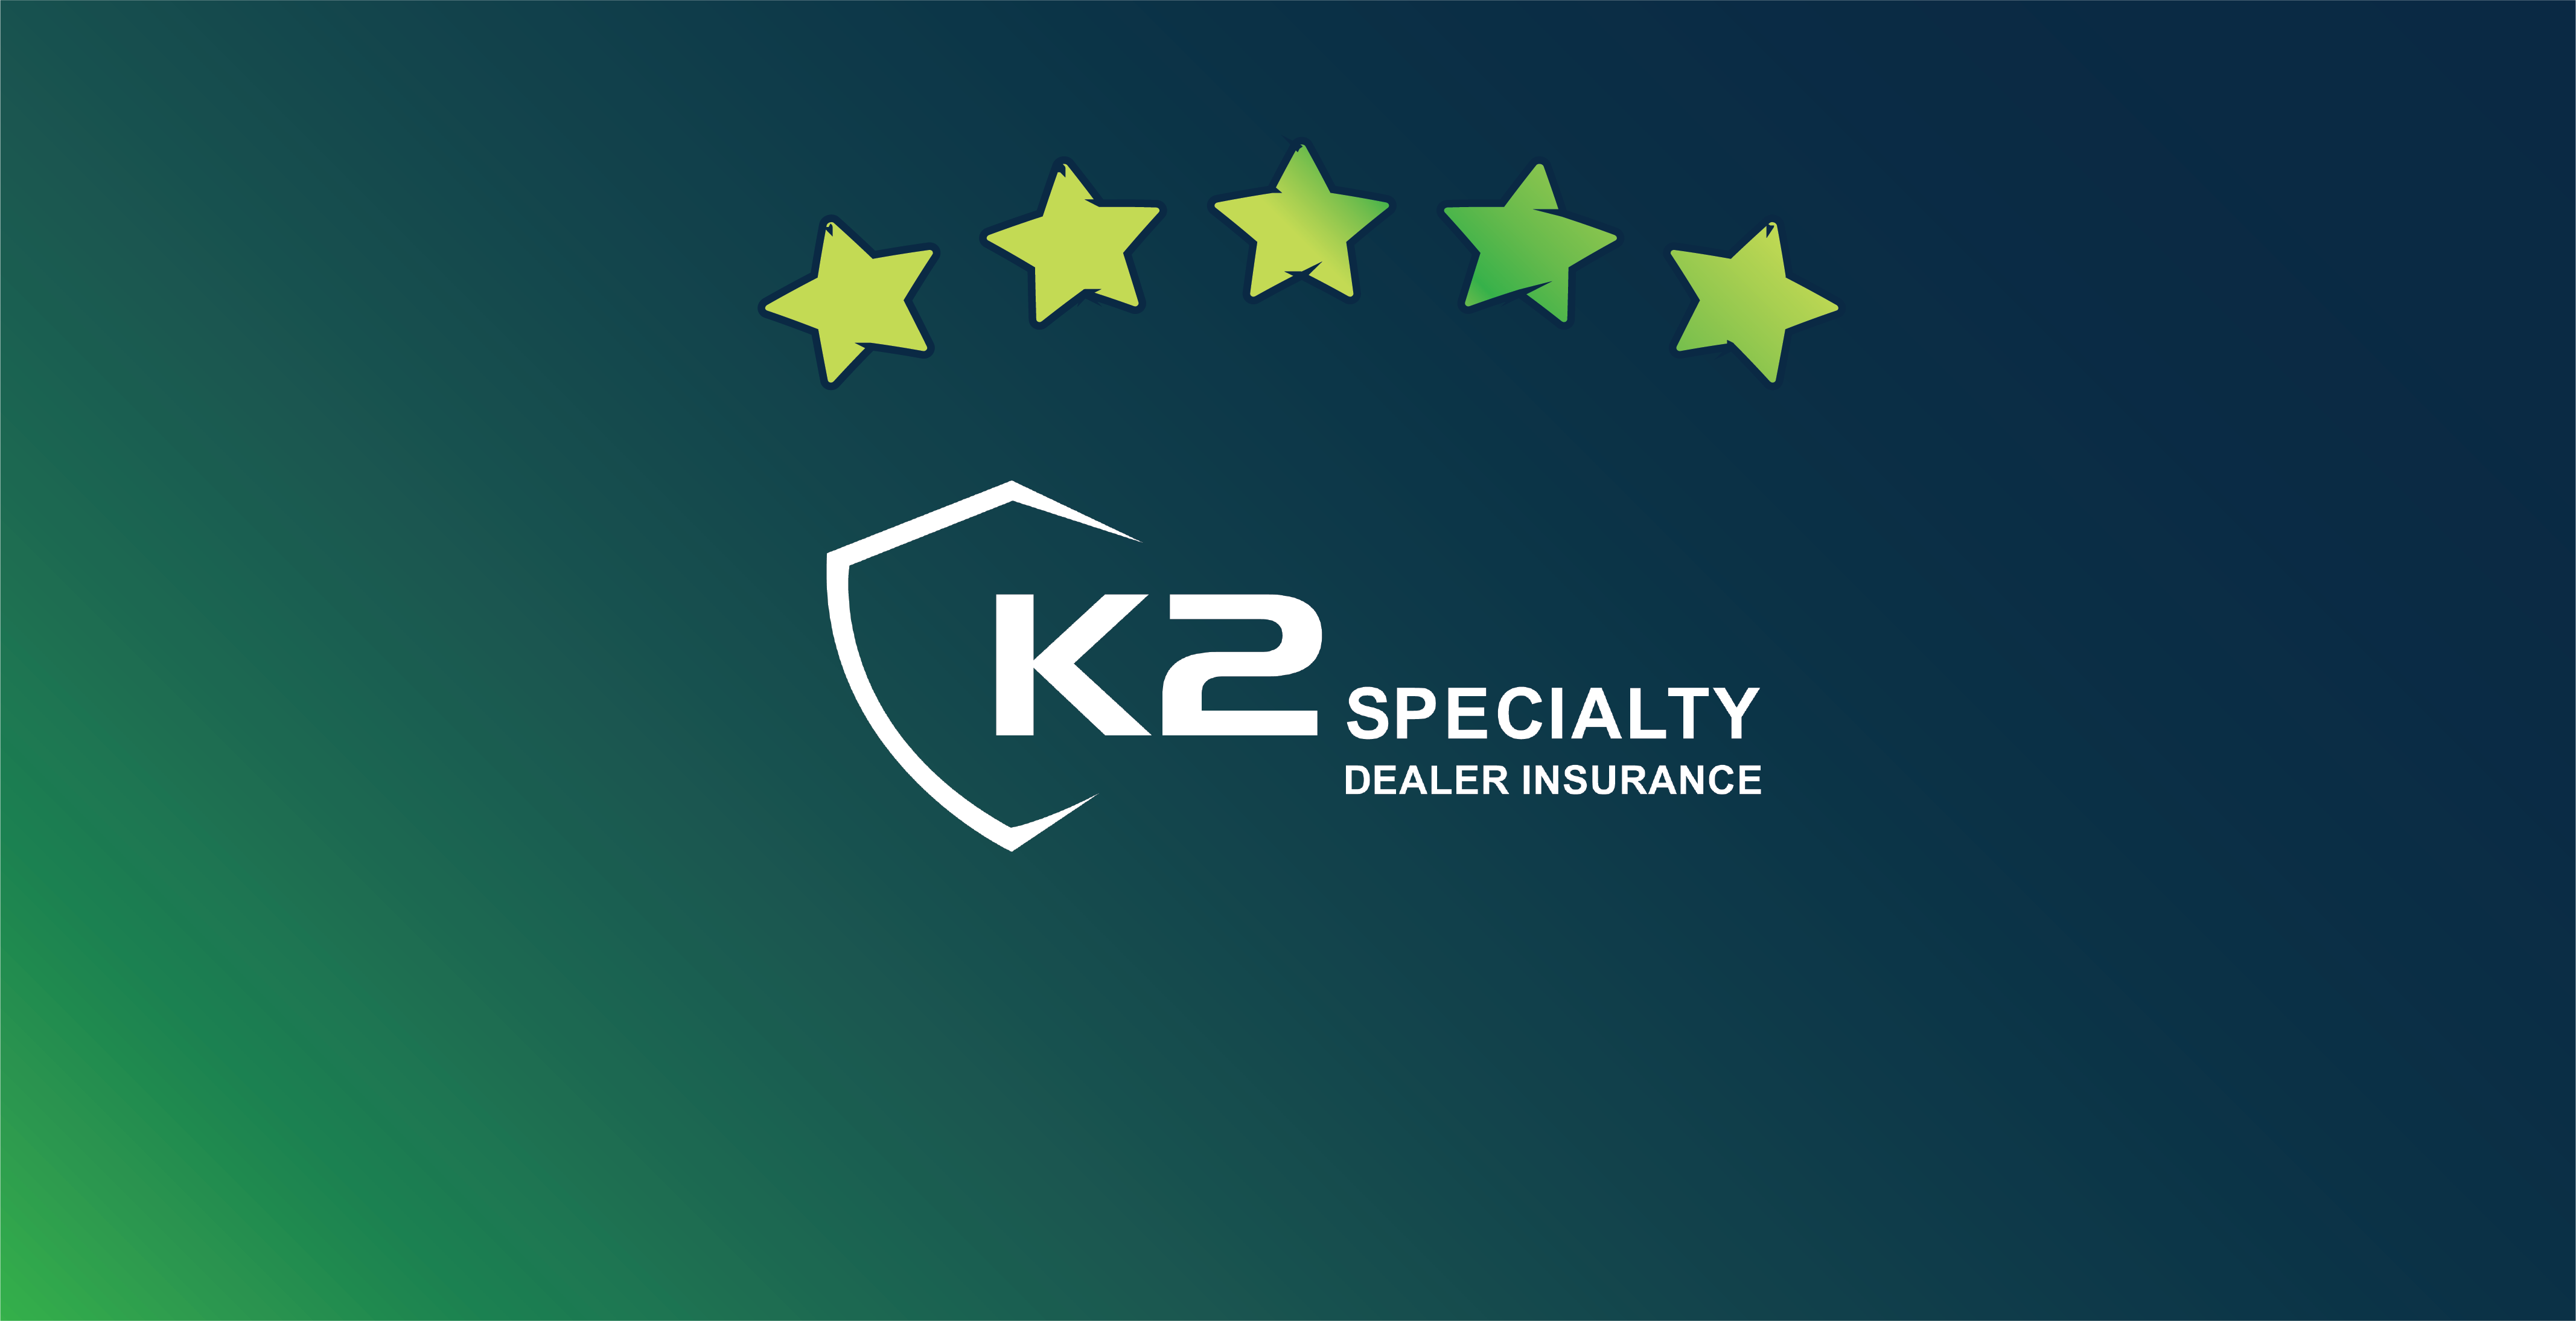 K2 Specialty - New Specialty MGA is Tech-driven and Open for Business